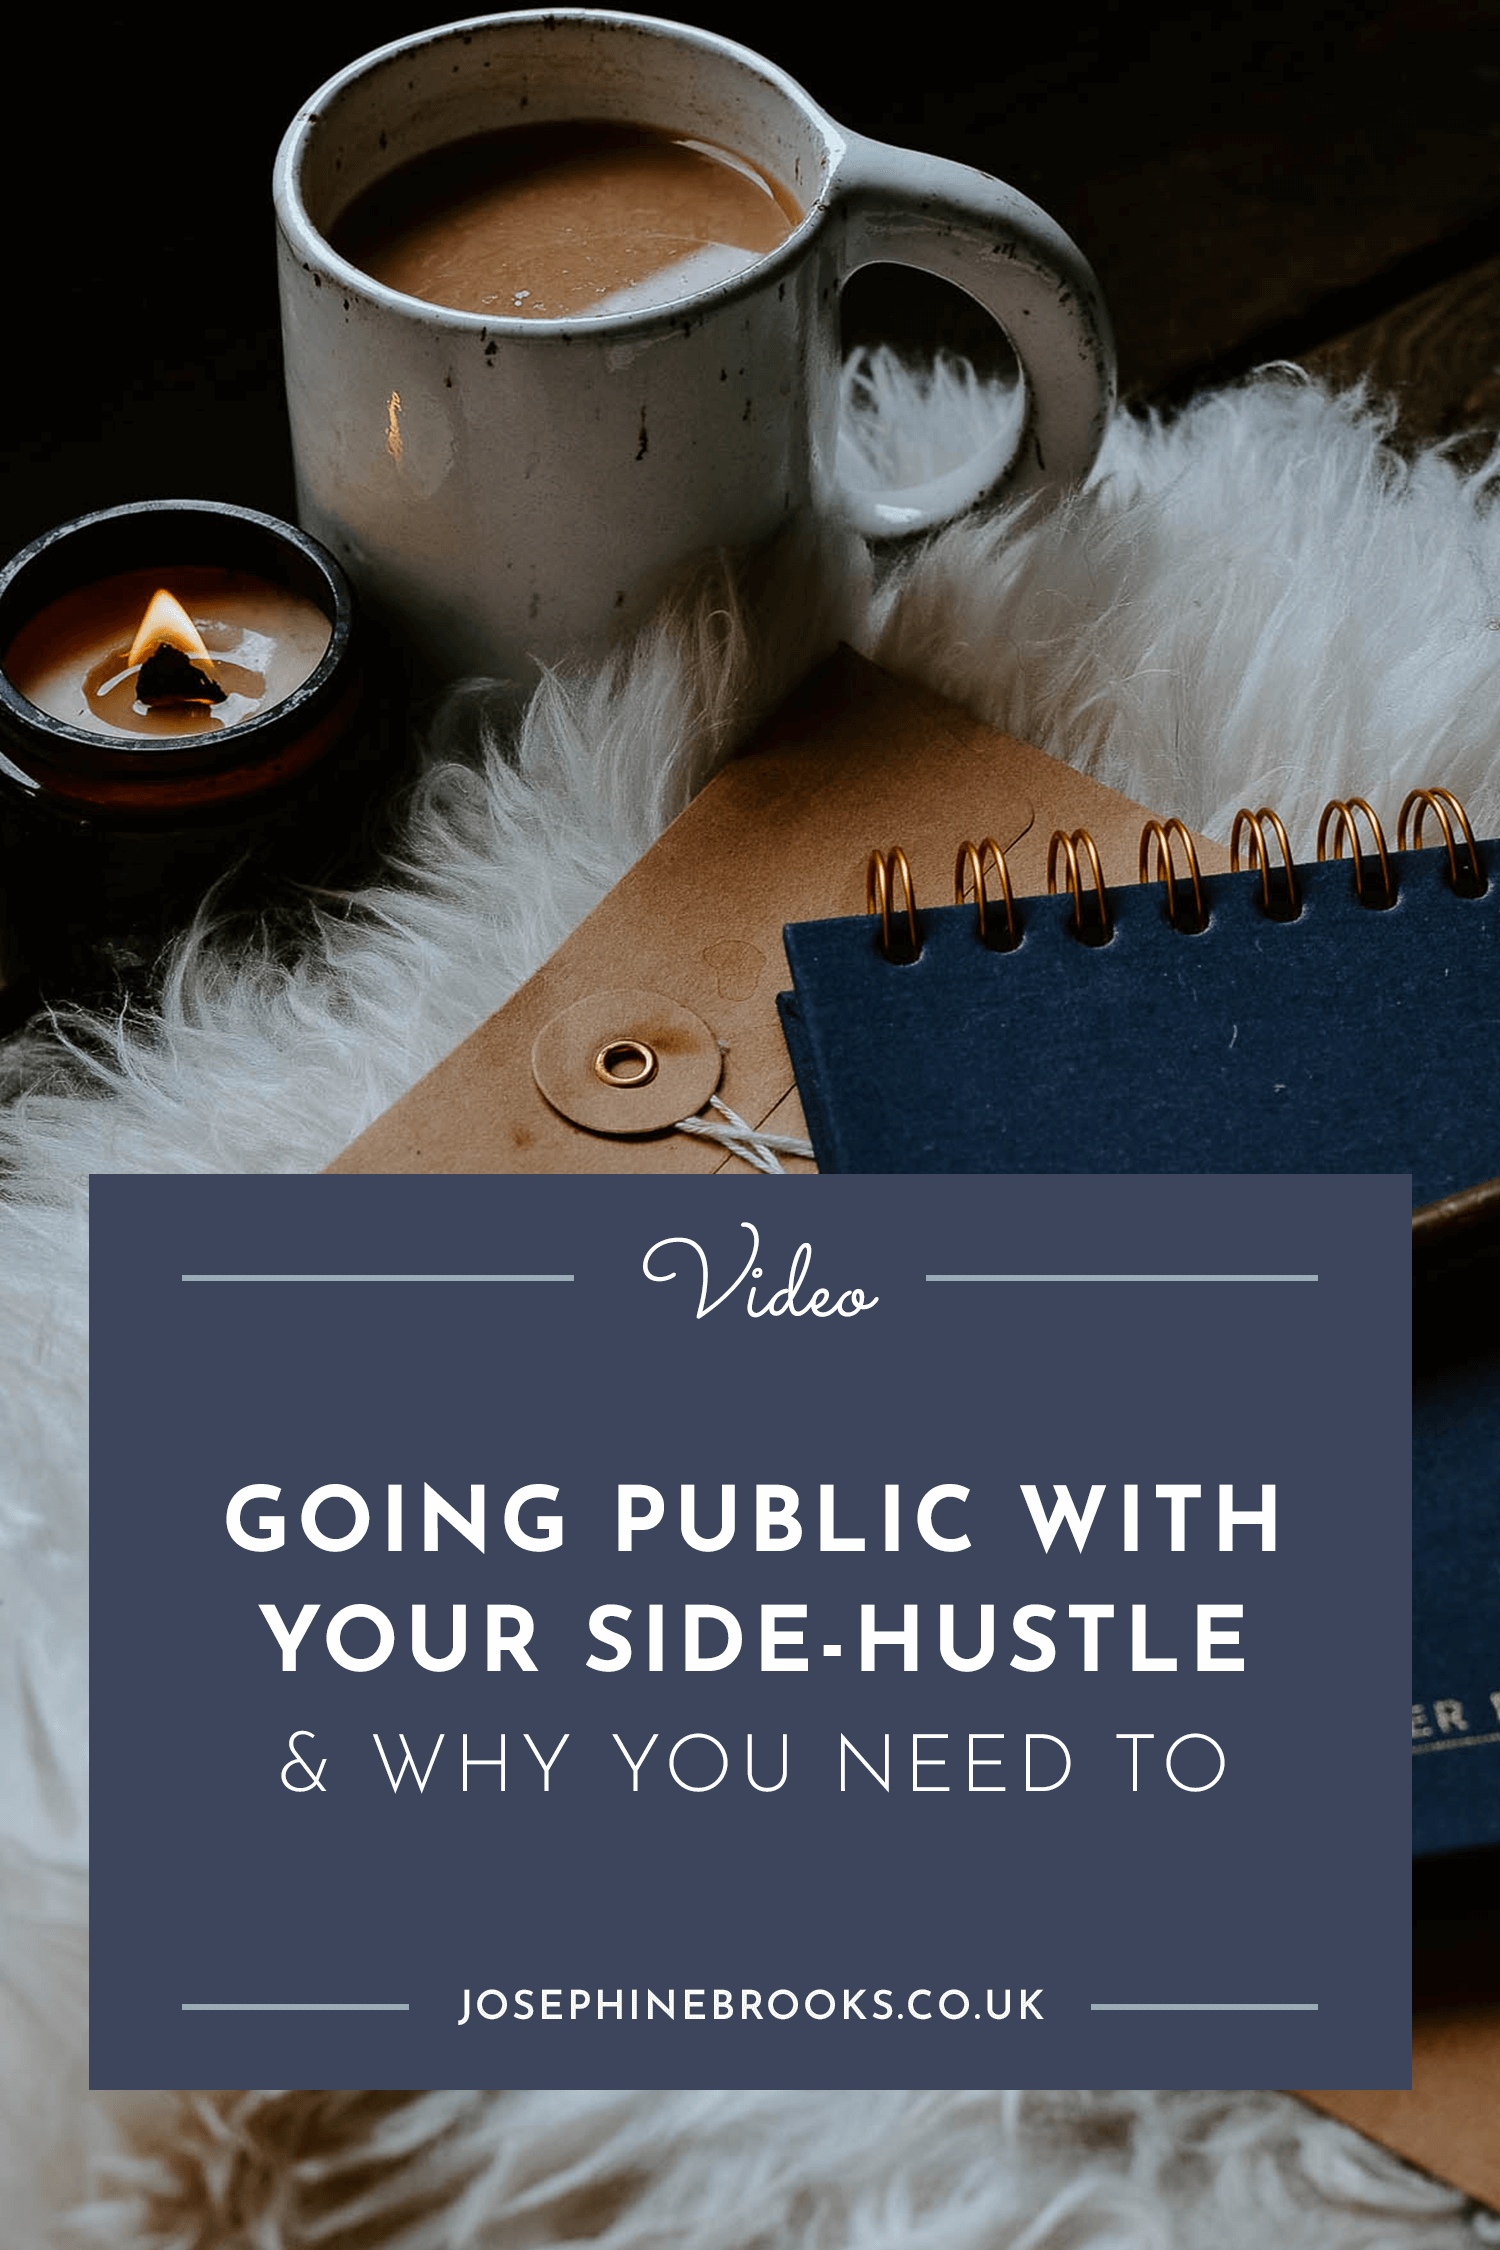 Going public with your side-hustle & why you need to, how to grow my side hustle | Josephine Brooks